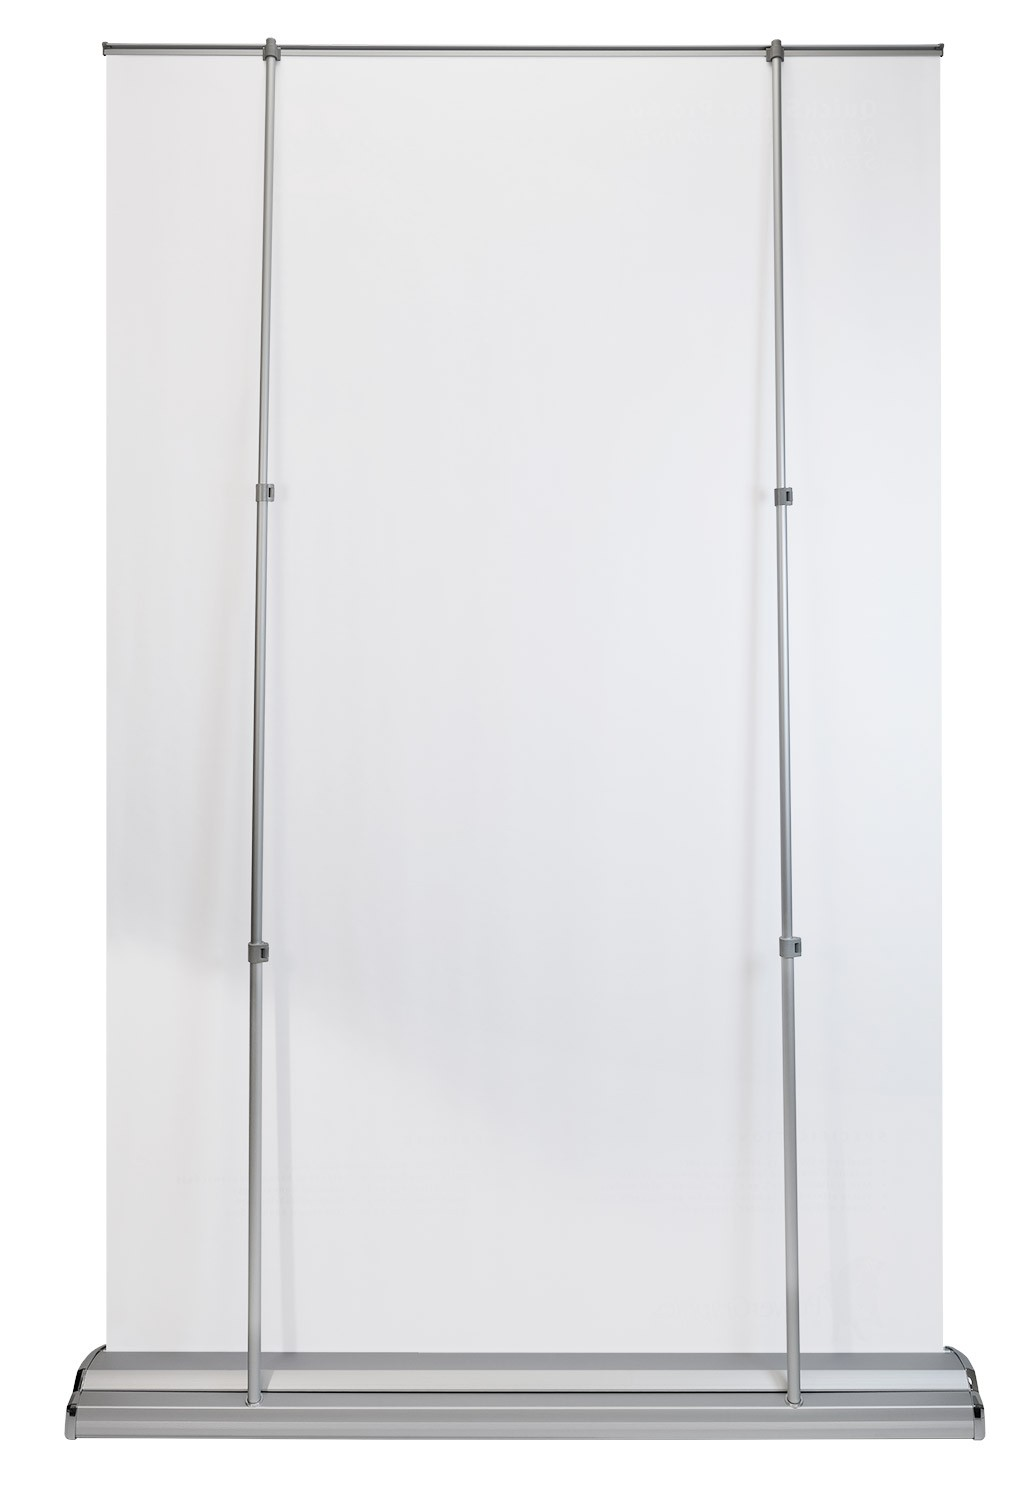 QuickSilver Pro 60 retractable banner stand